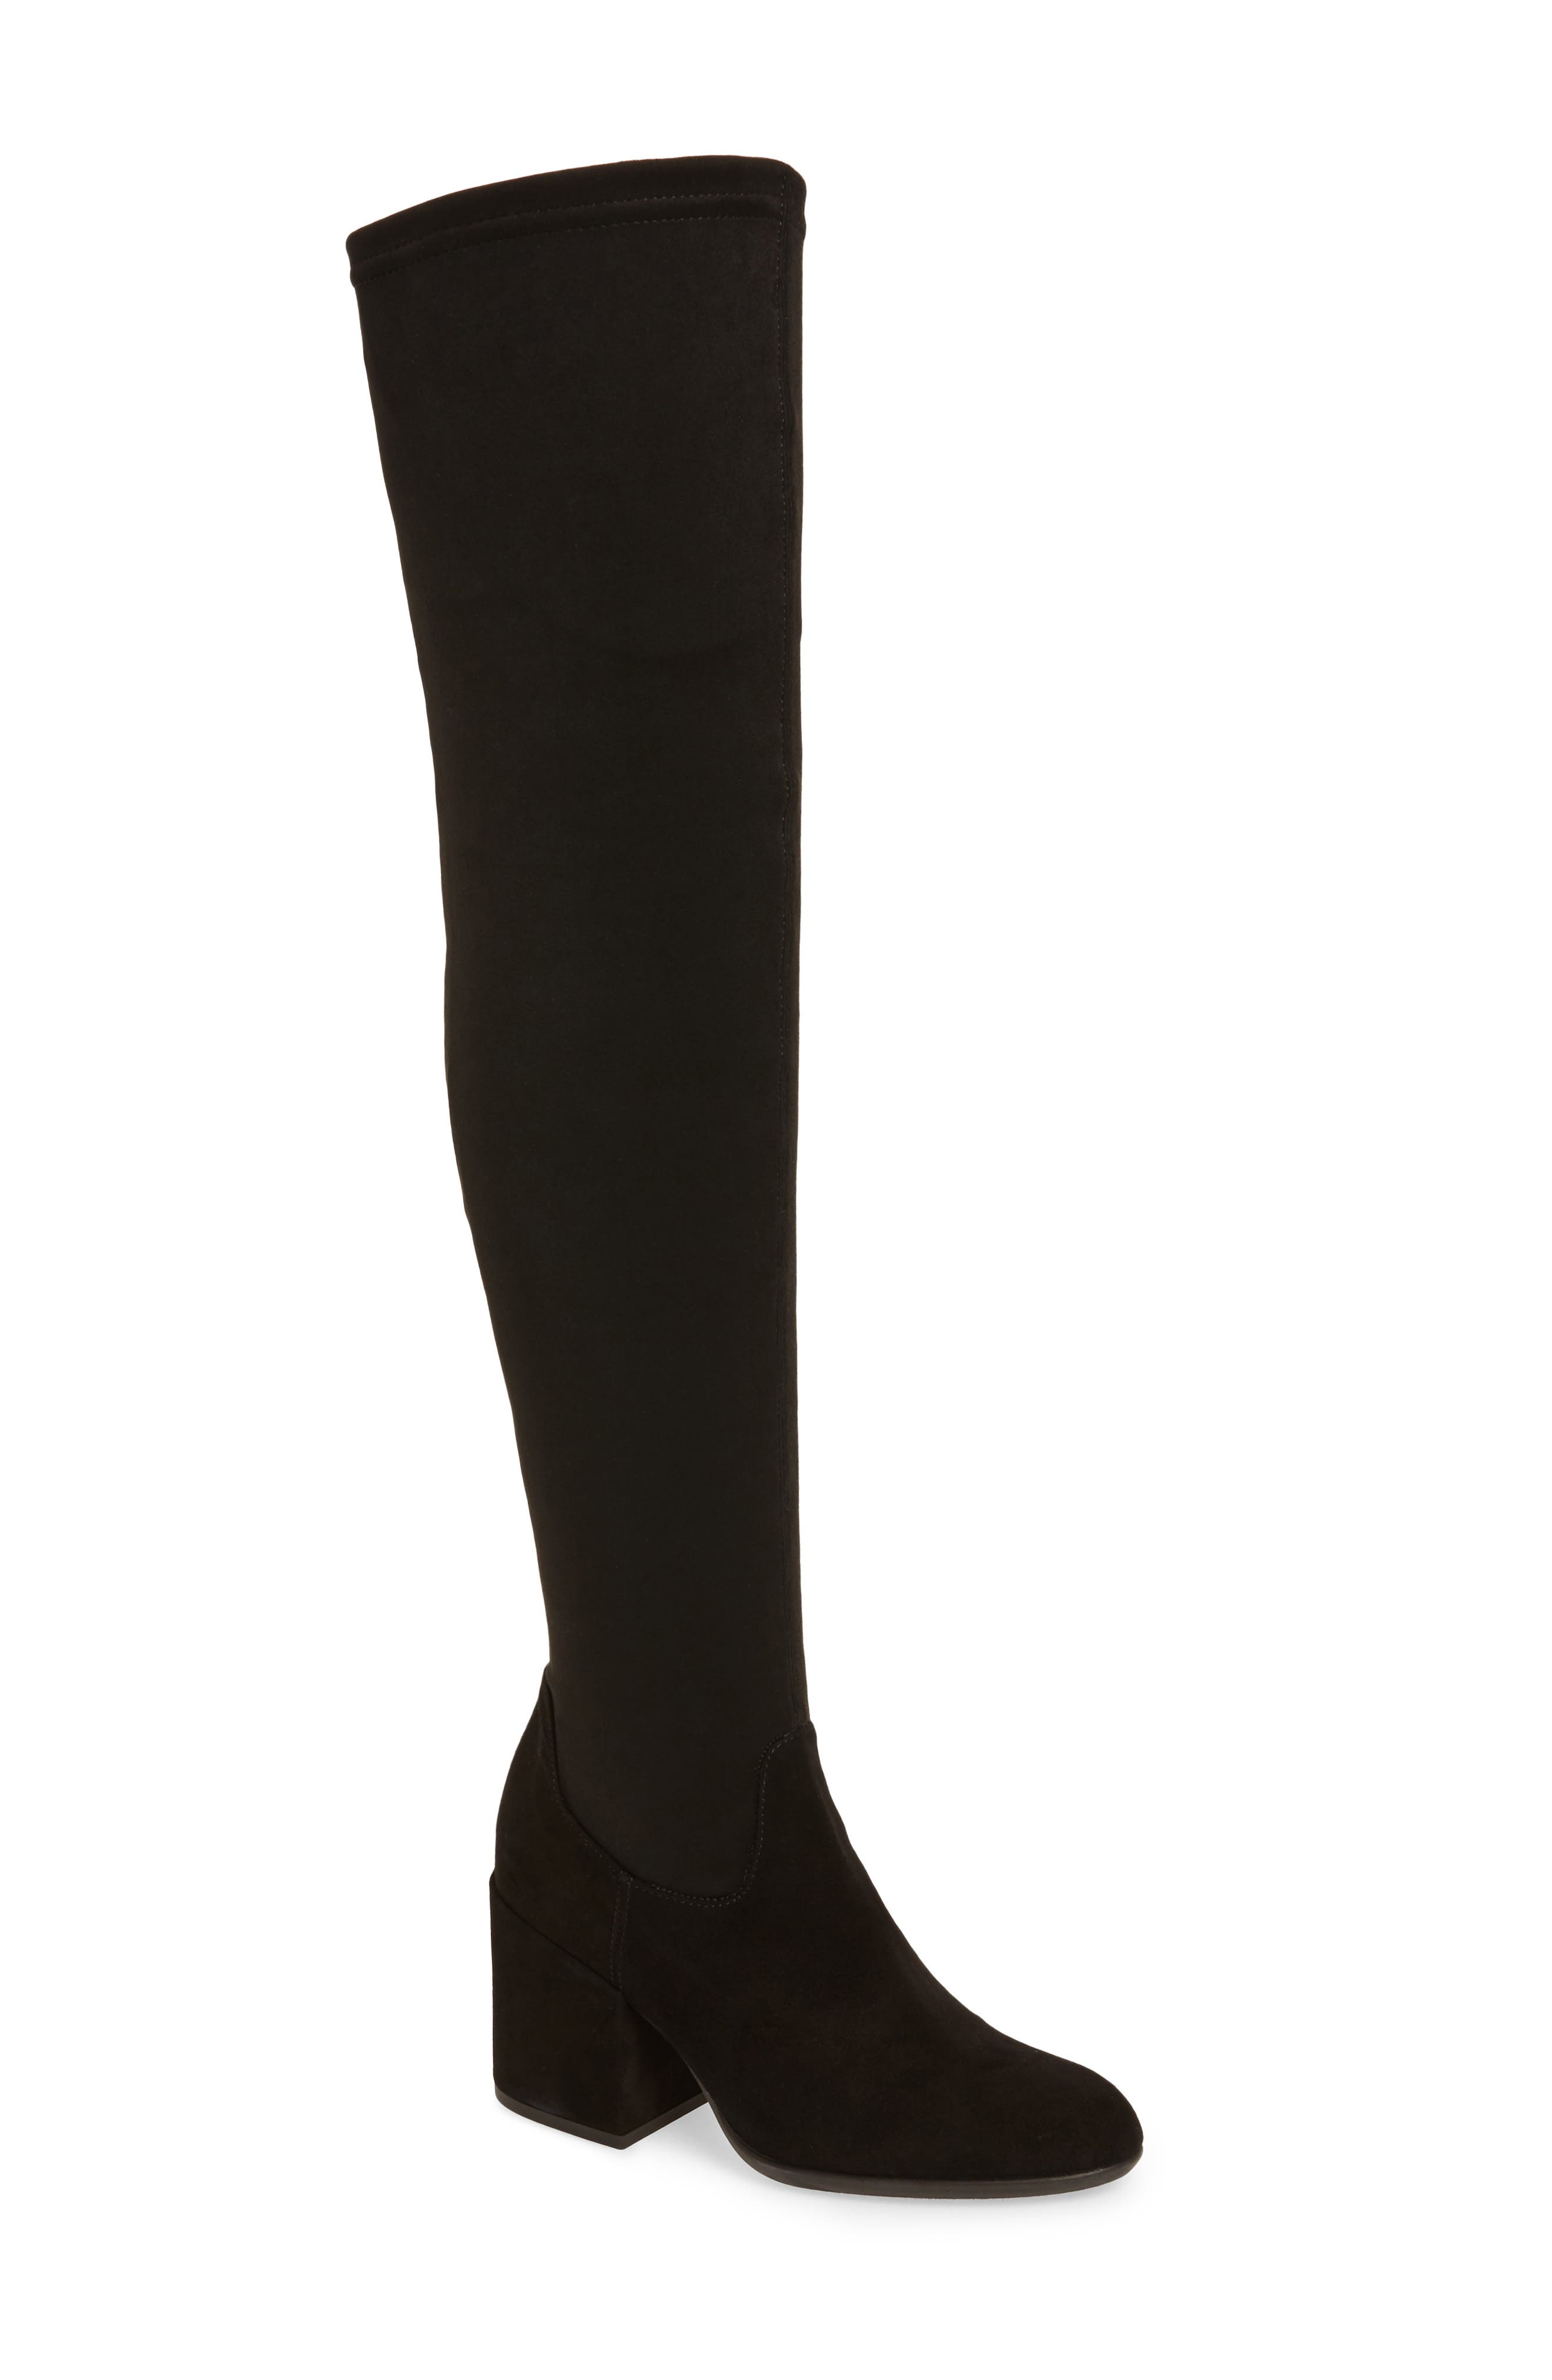 Verve Over the Knee Boot,                             Main thumbnail 1, color,                             001